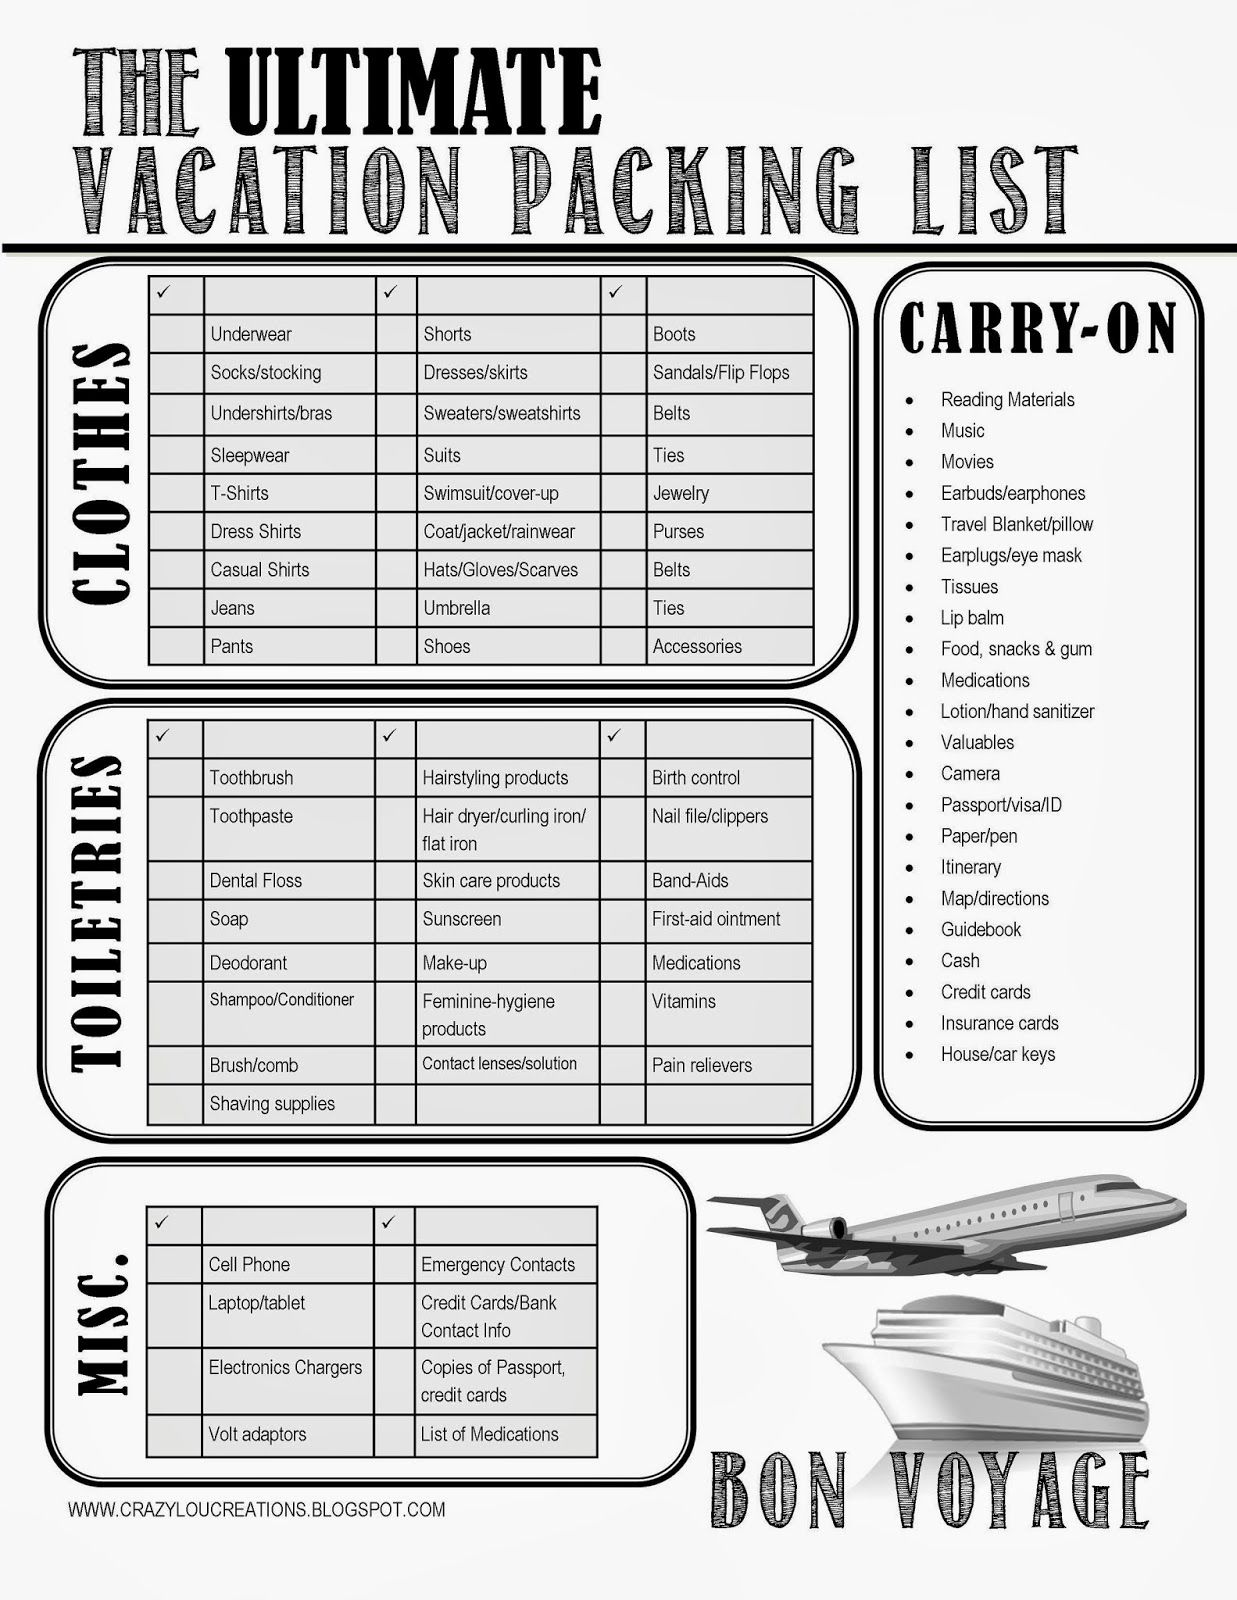 The Ultimate Vacation Packing List Vacation Packing List